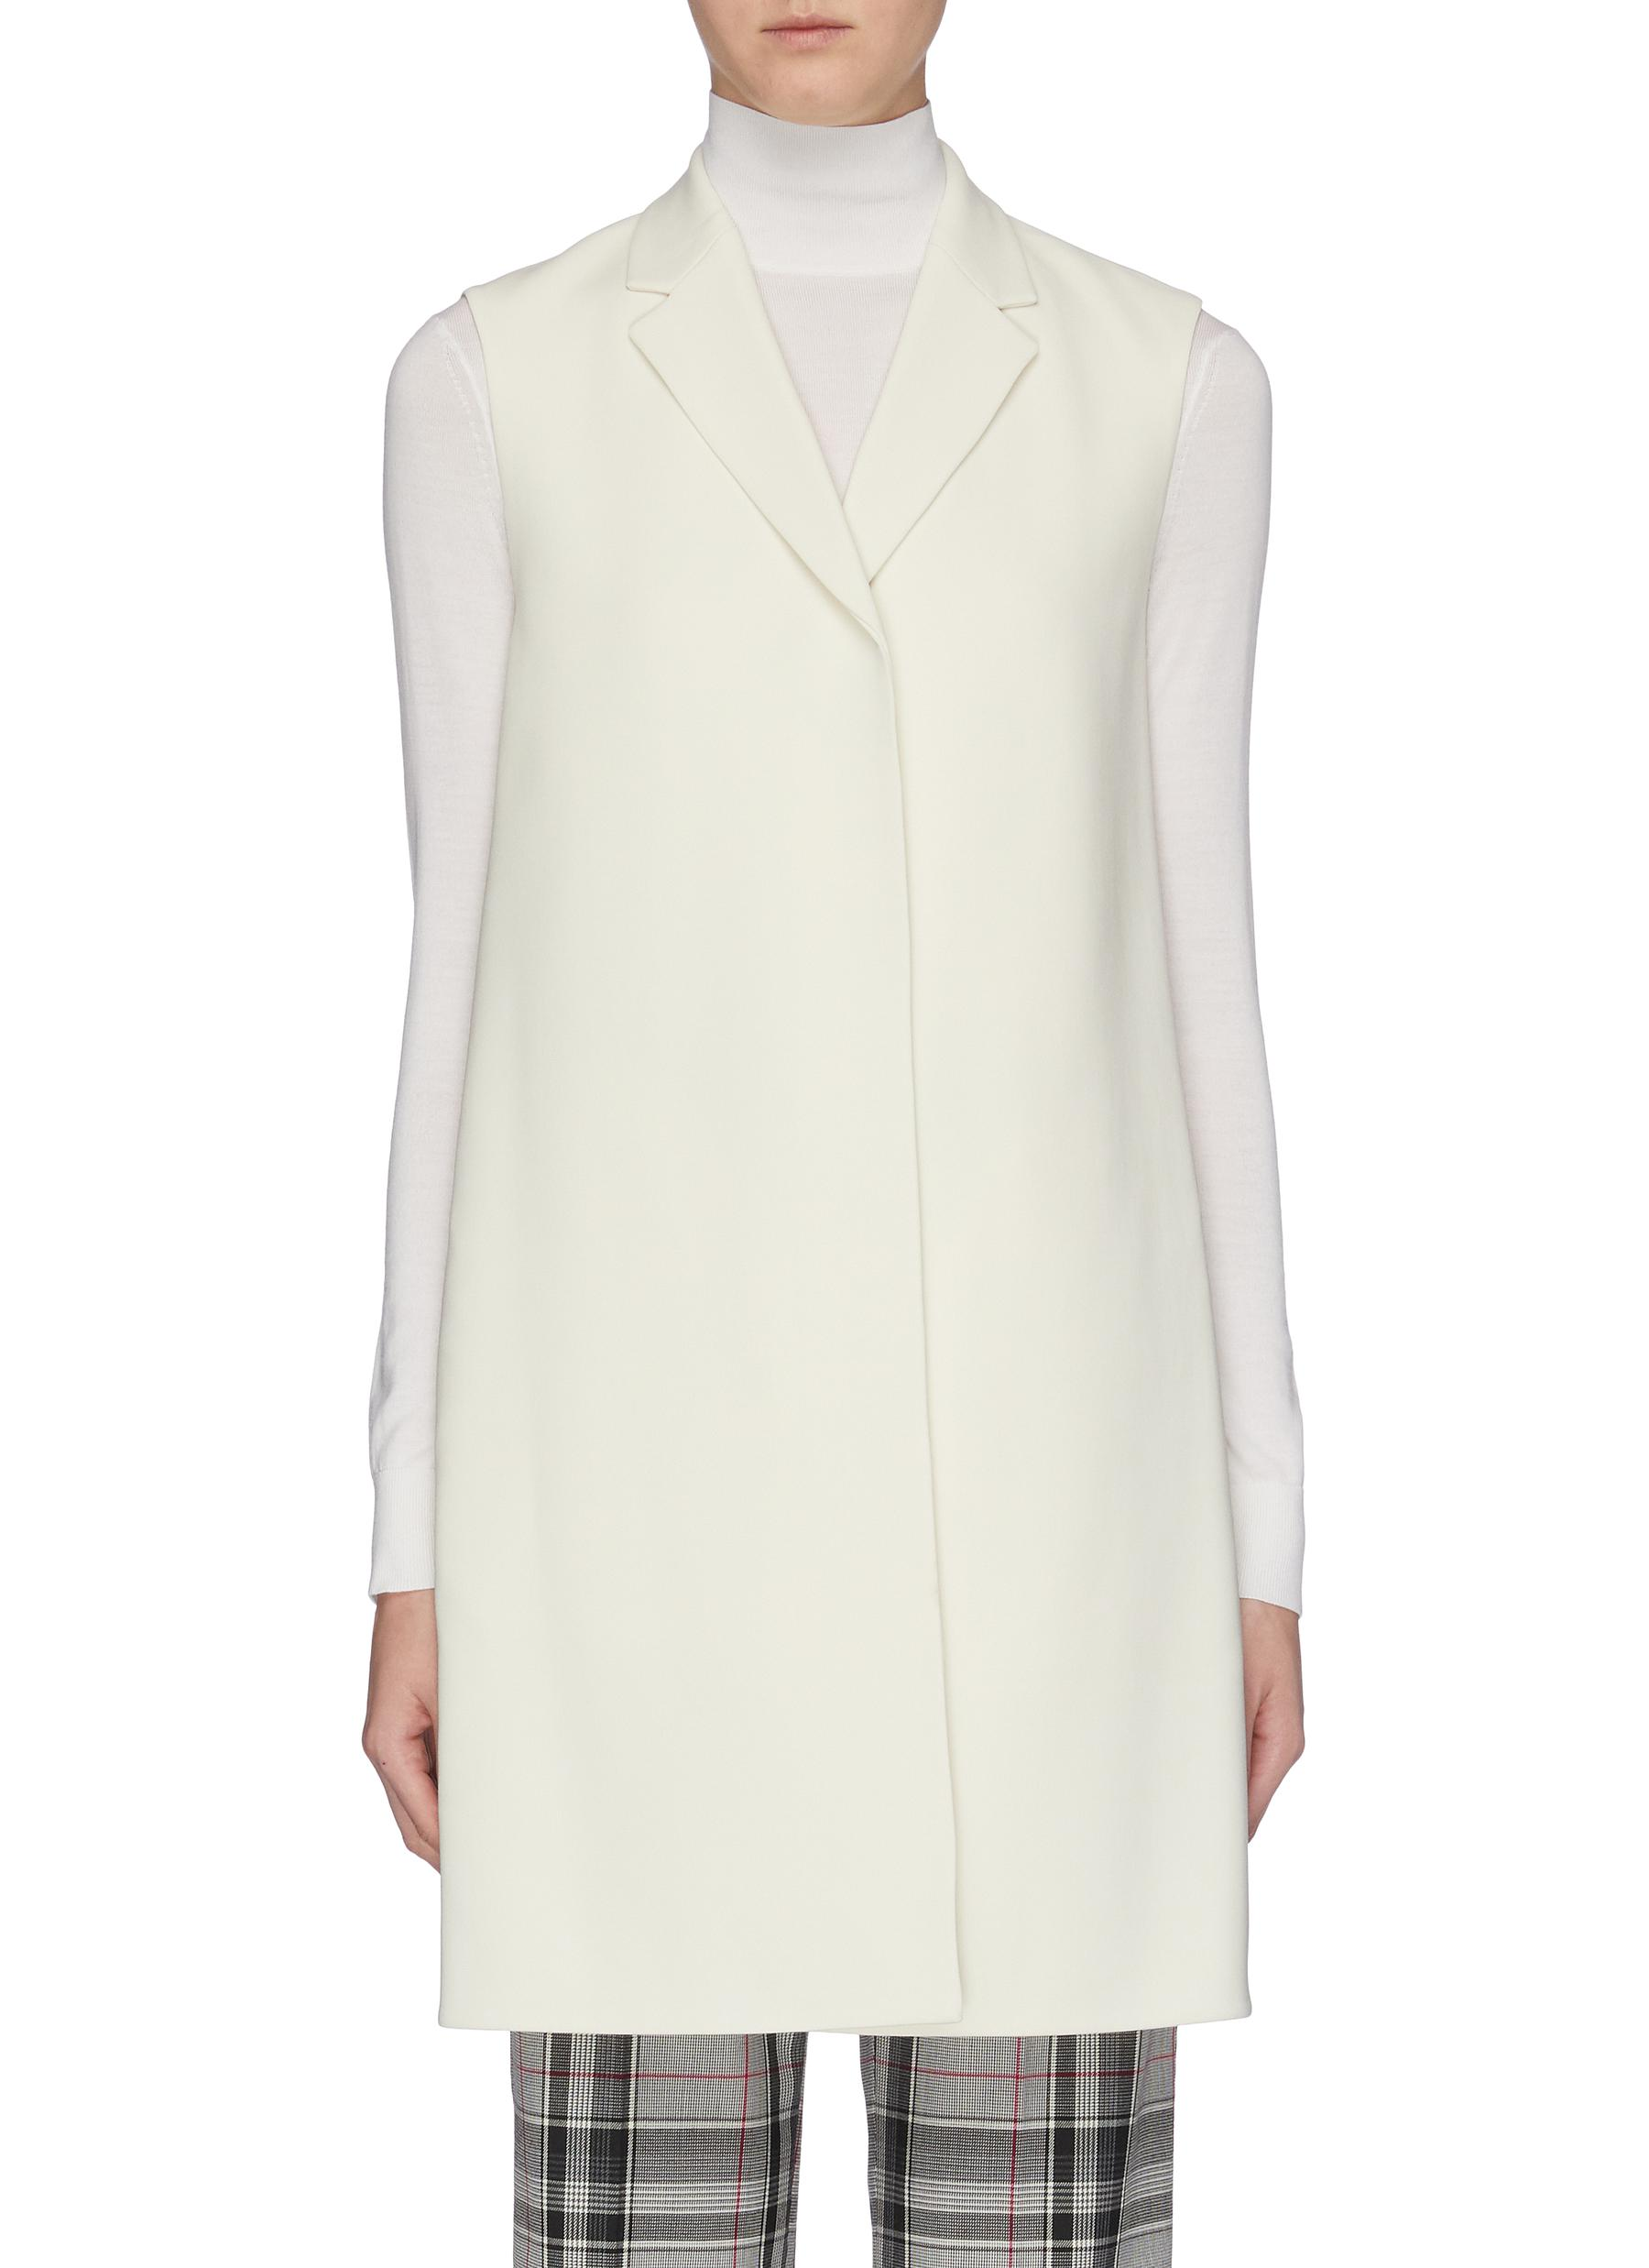 Notched lapel sleeveless crepe vest by Theory